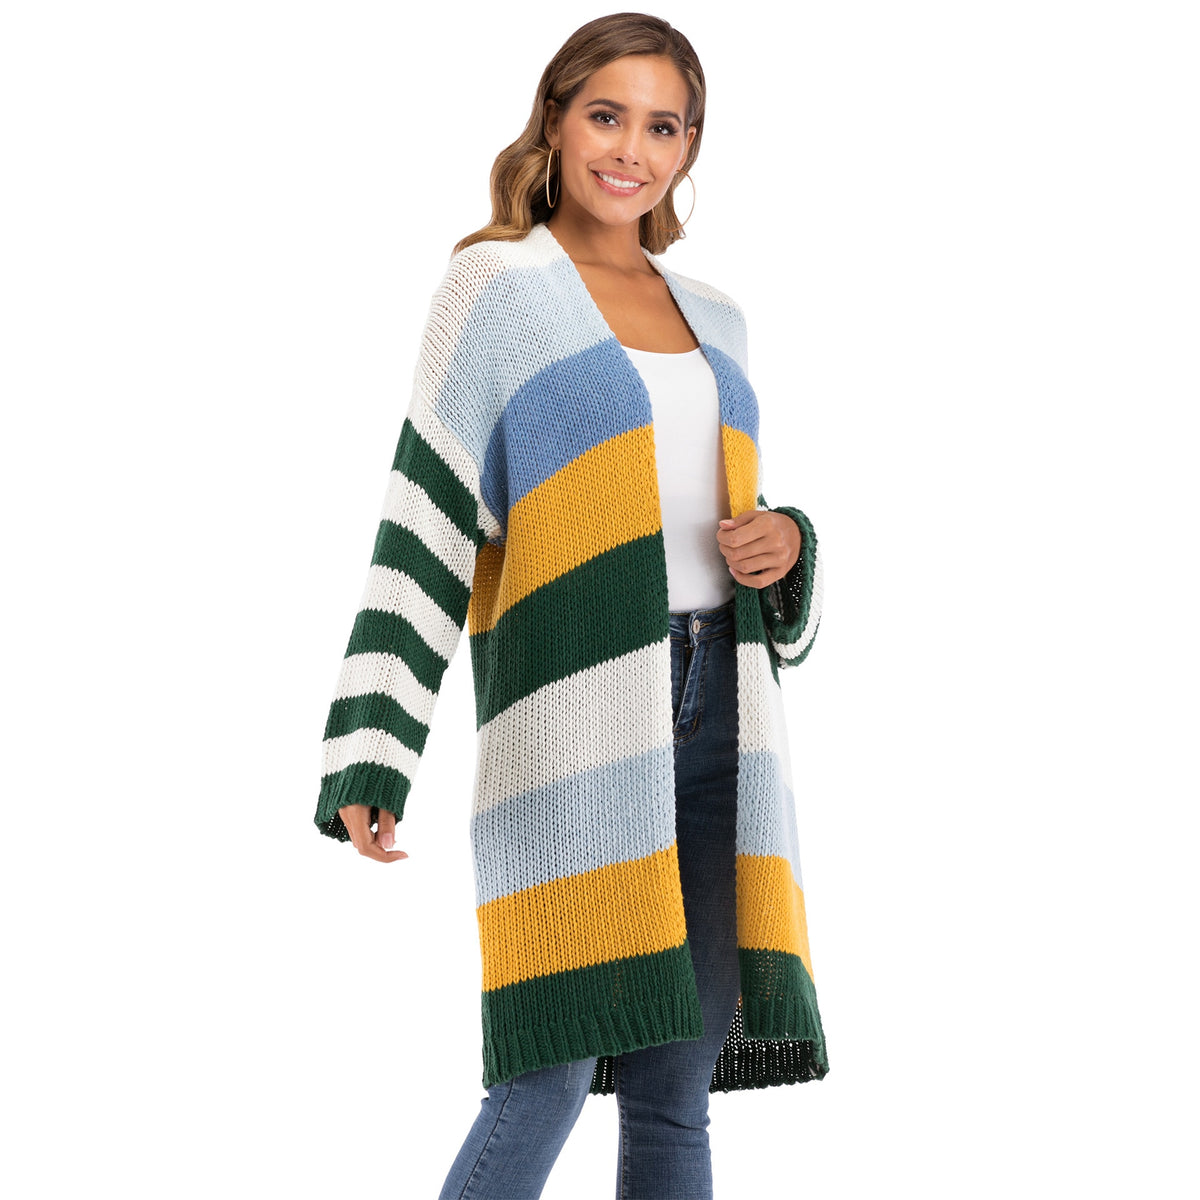 WOMEN'S Winter Coat Warm Cross Border Casual Long Joint Contrast Color Striped Oversize Knitted Sweater Cardigan Patched Outwear